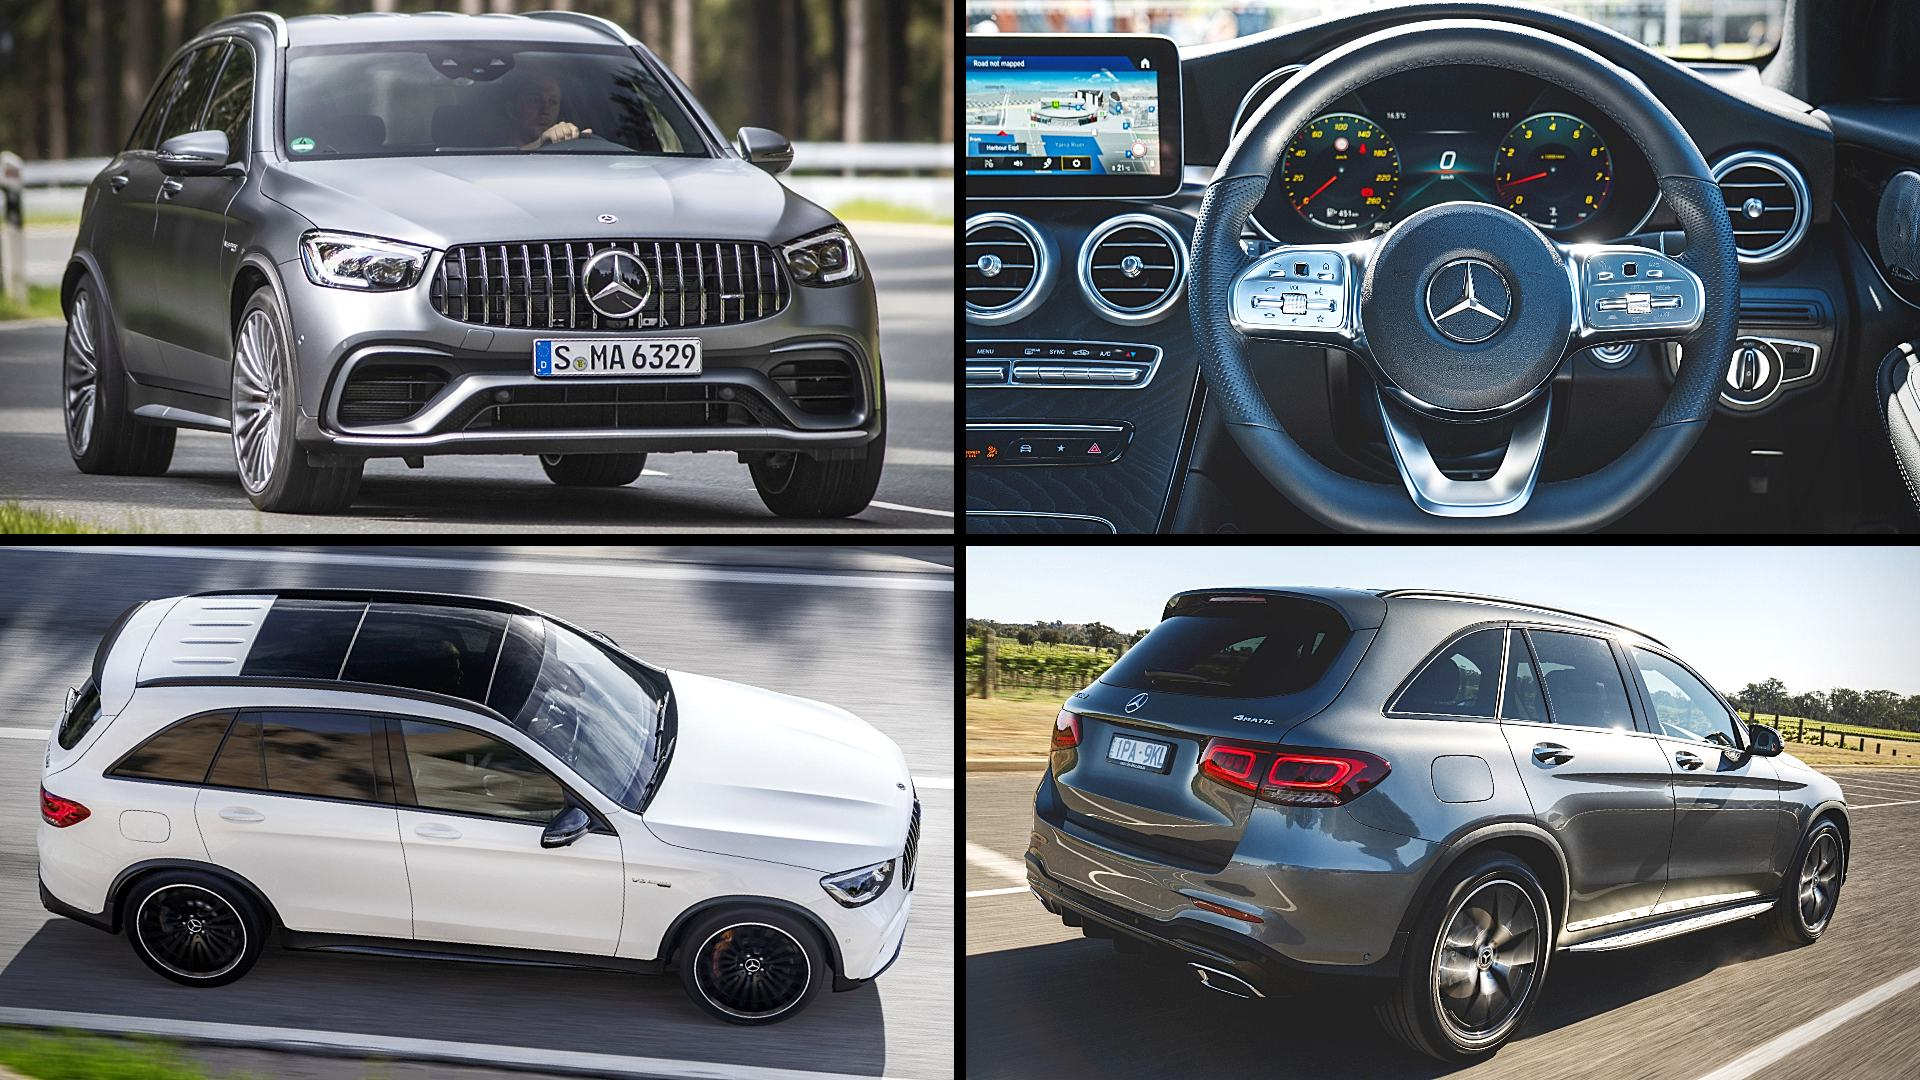 2020 Mercedes AMG SUV Models Pictures